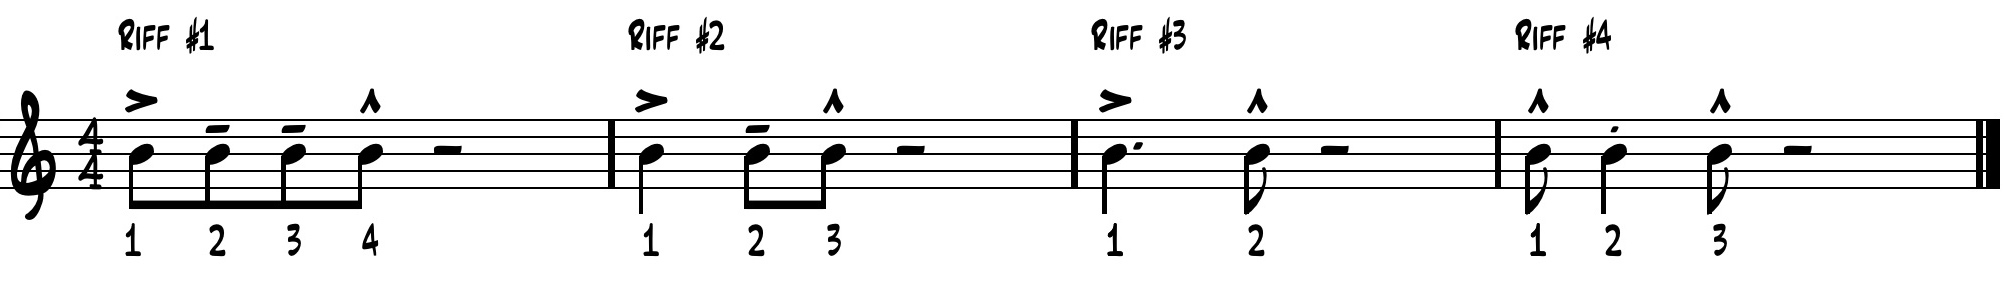 Exercise 3: The jazz band learns to apply the minor pentatonic scale to the rhythms above by using the first couple notes of the minor pentatonic scale ascending.